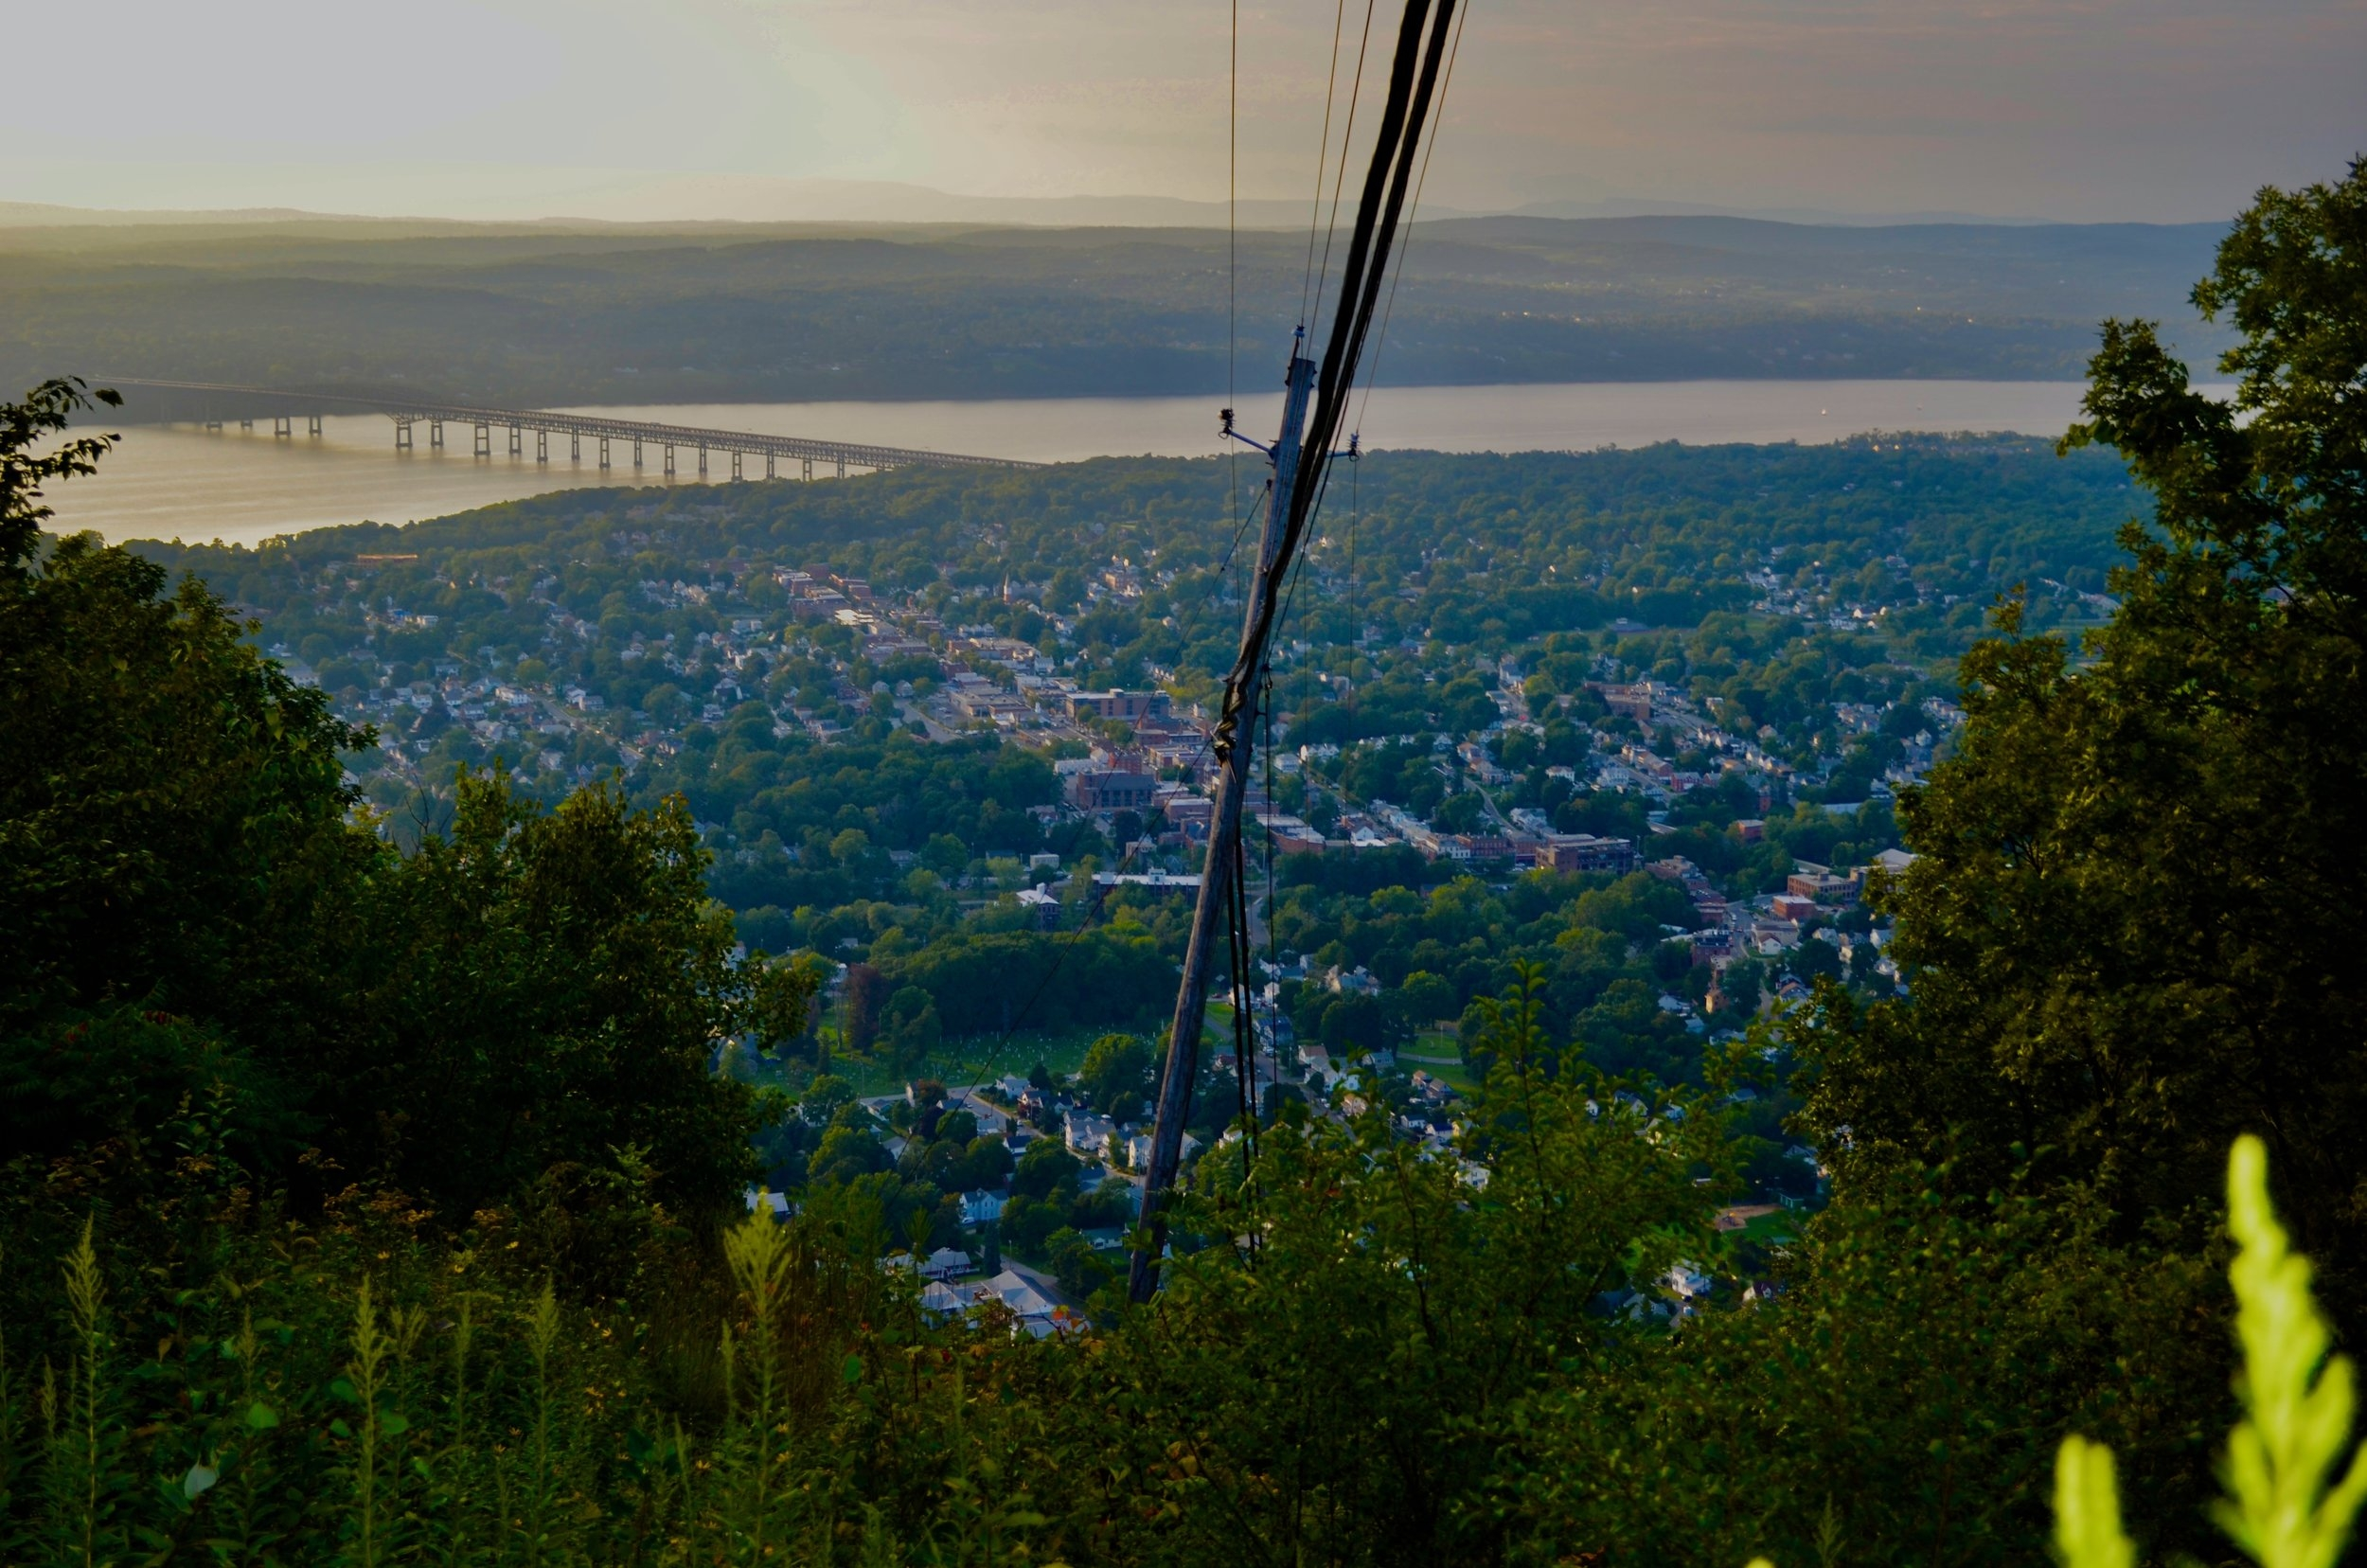 Night Hike to Mt. Beacon with Arachnologist, Dr. Stephanie Loria - August 25